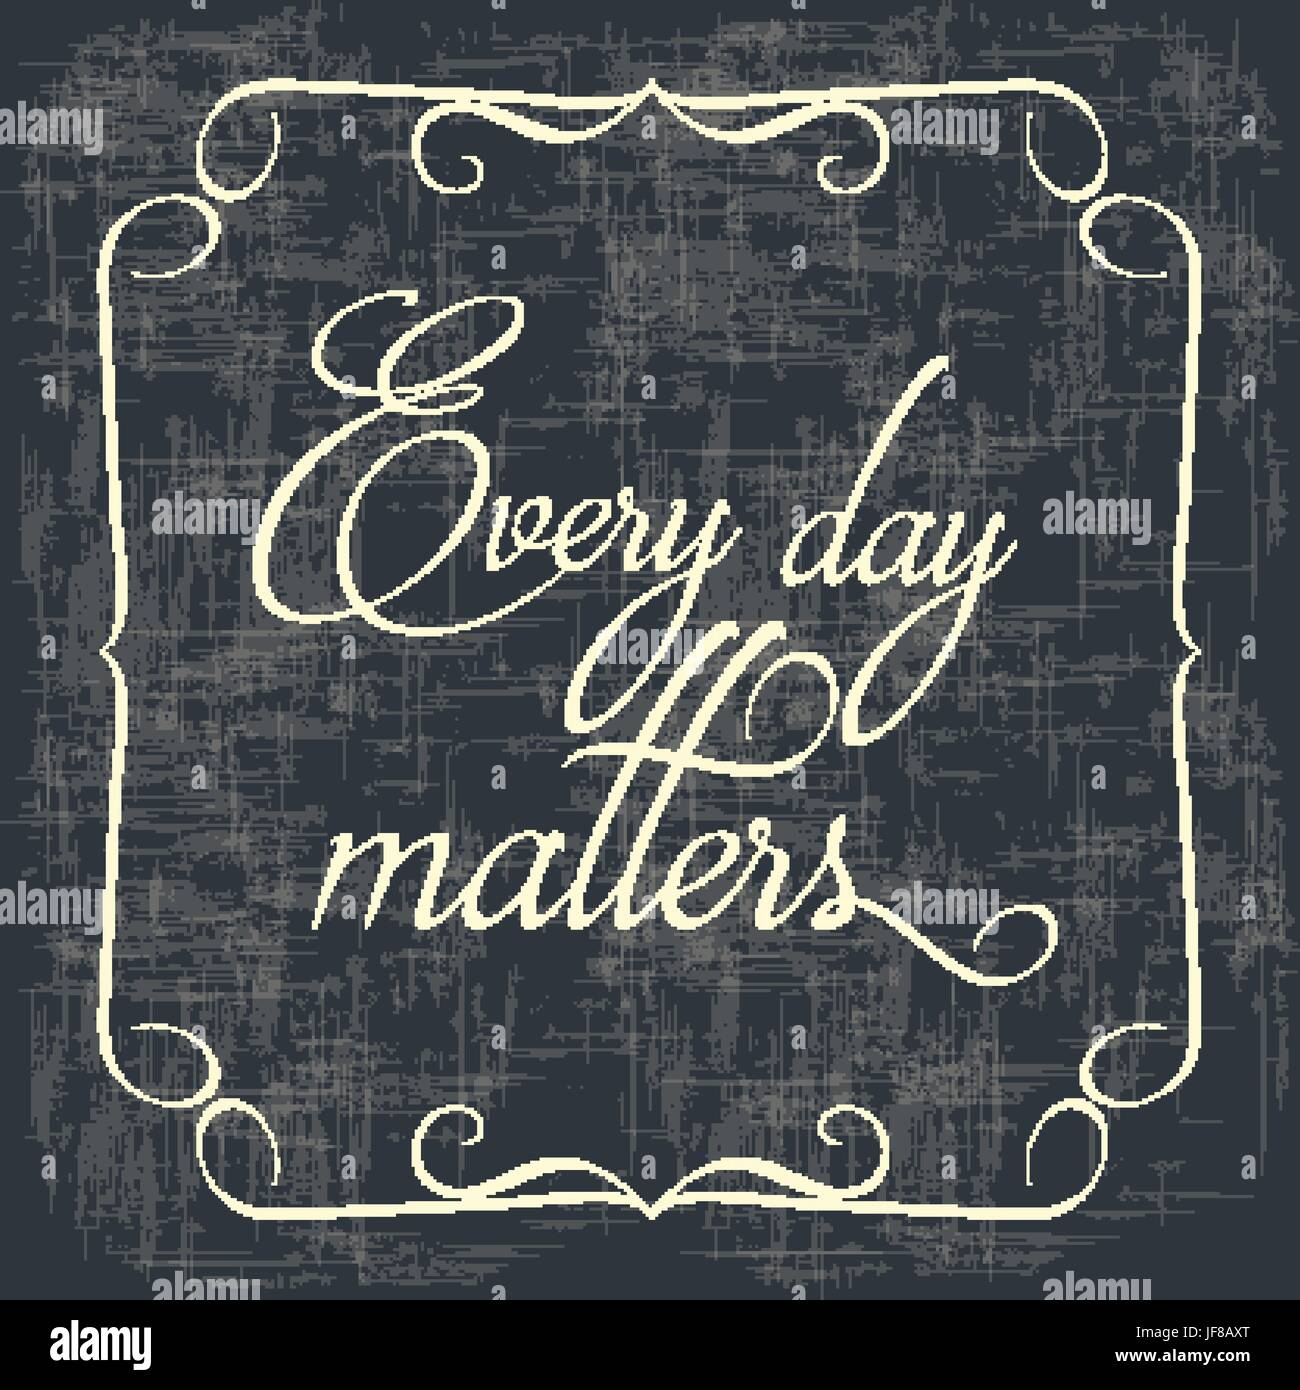 Every day matters Quote Typographical retro Background - Stock Image